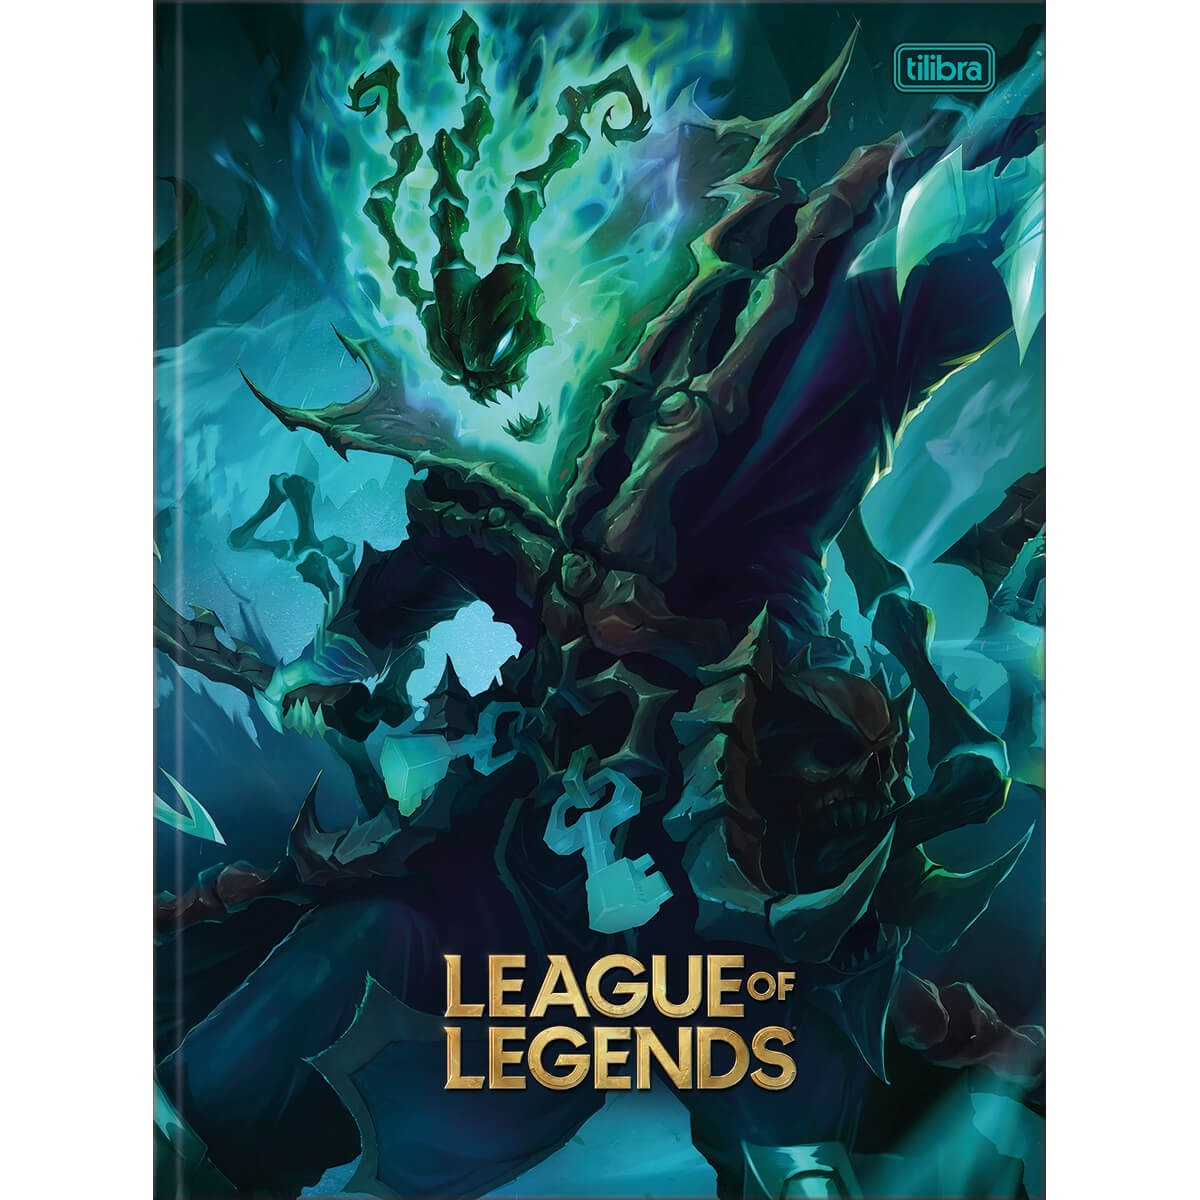 Caderno Brochura Capa Dura Universitário League of Legends Tresh 80 Folhas